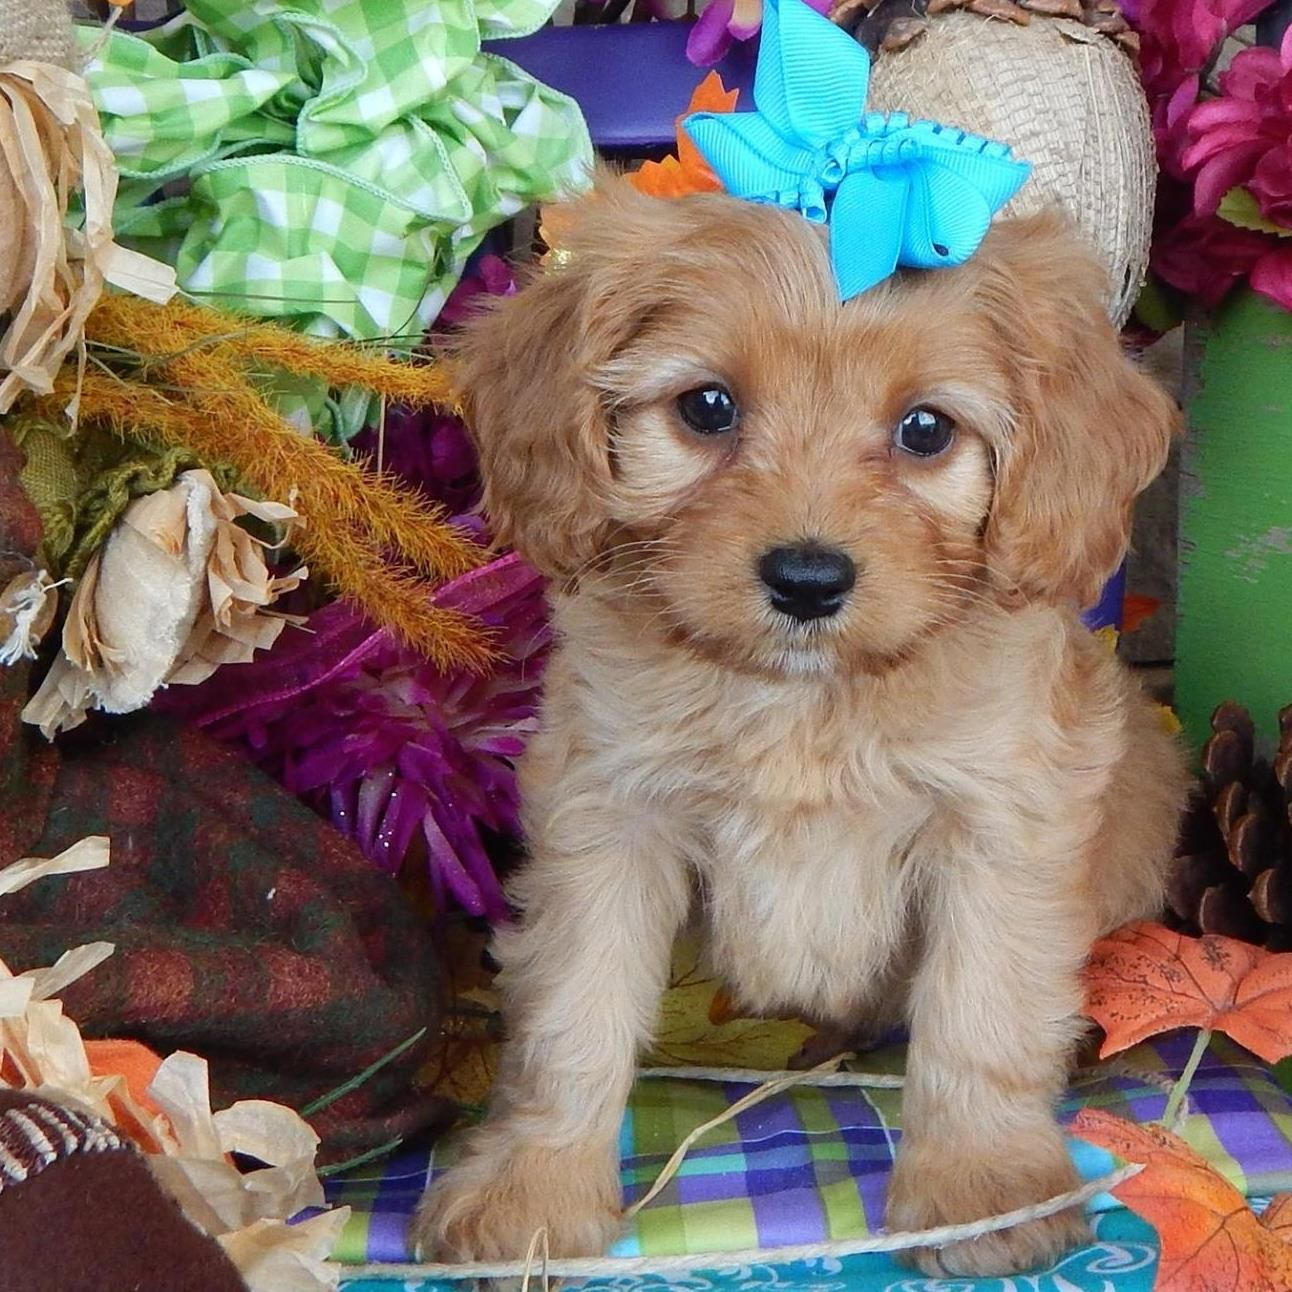 Cavapoo puppies for sale Cavapoo Cavapoos Cavapoo dog Cavapoo